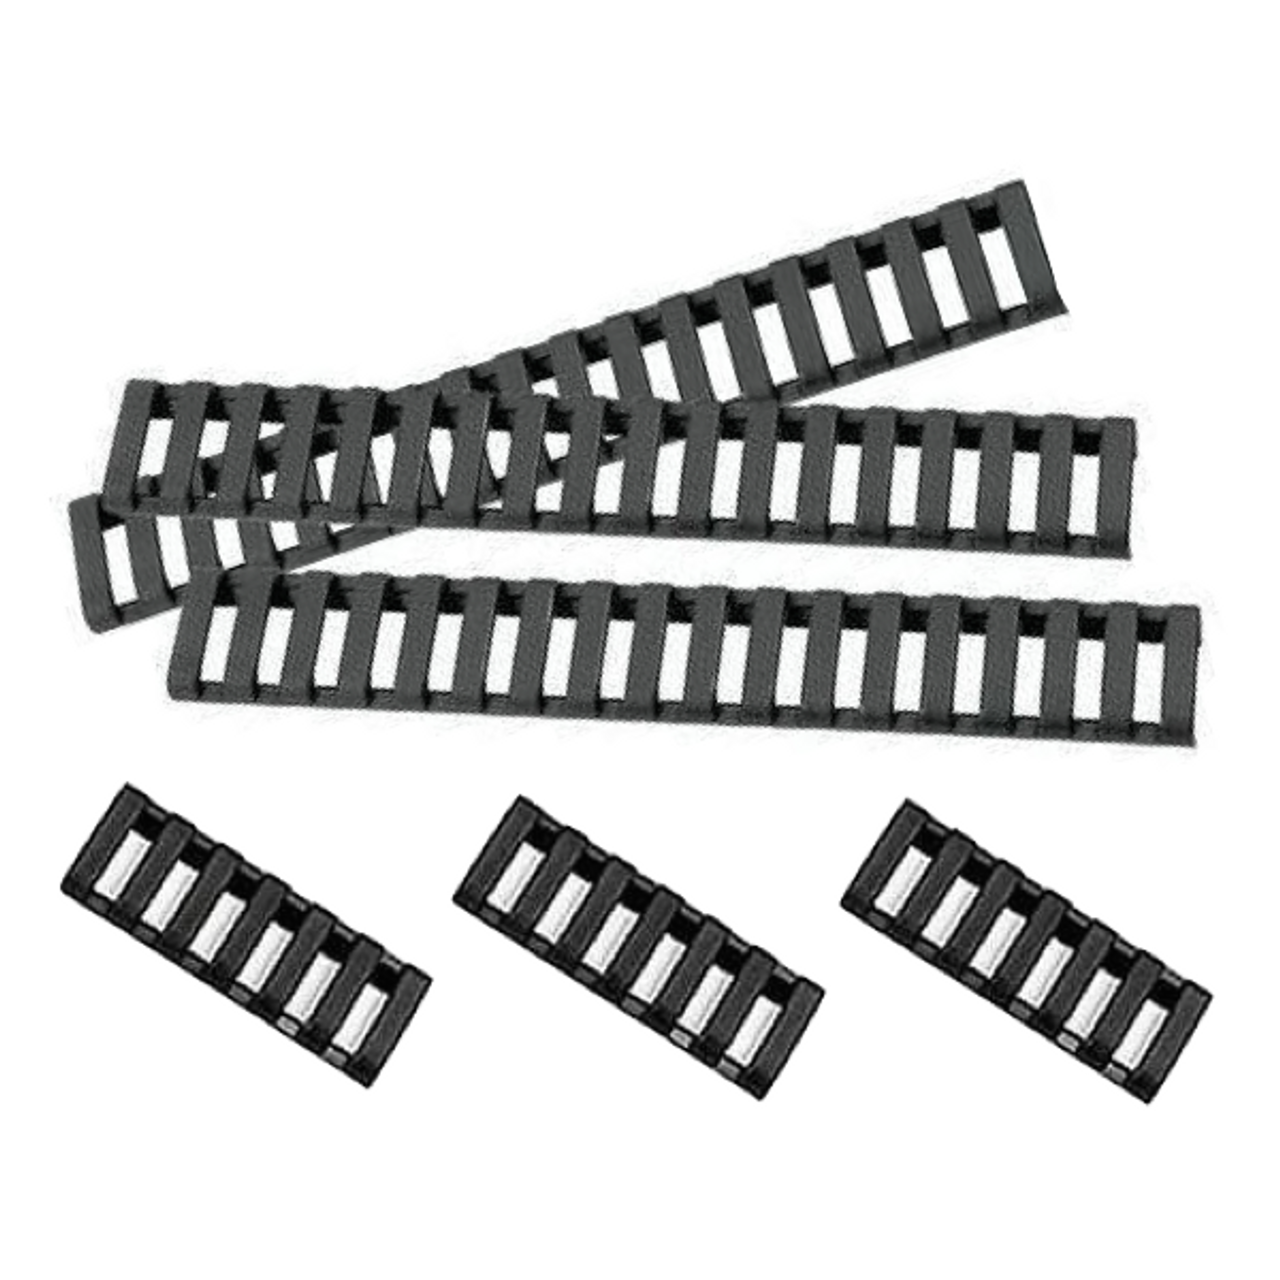 f532e5549ac ... Ergo Low-Pro Ladder Rail Covers - 3 Pack